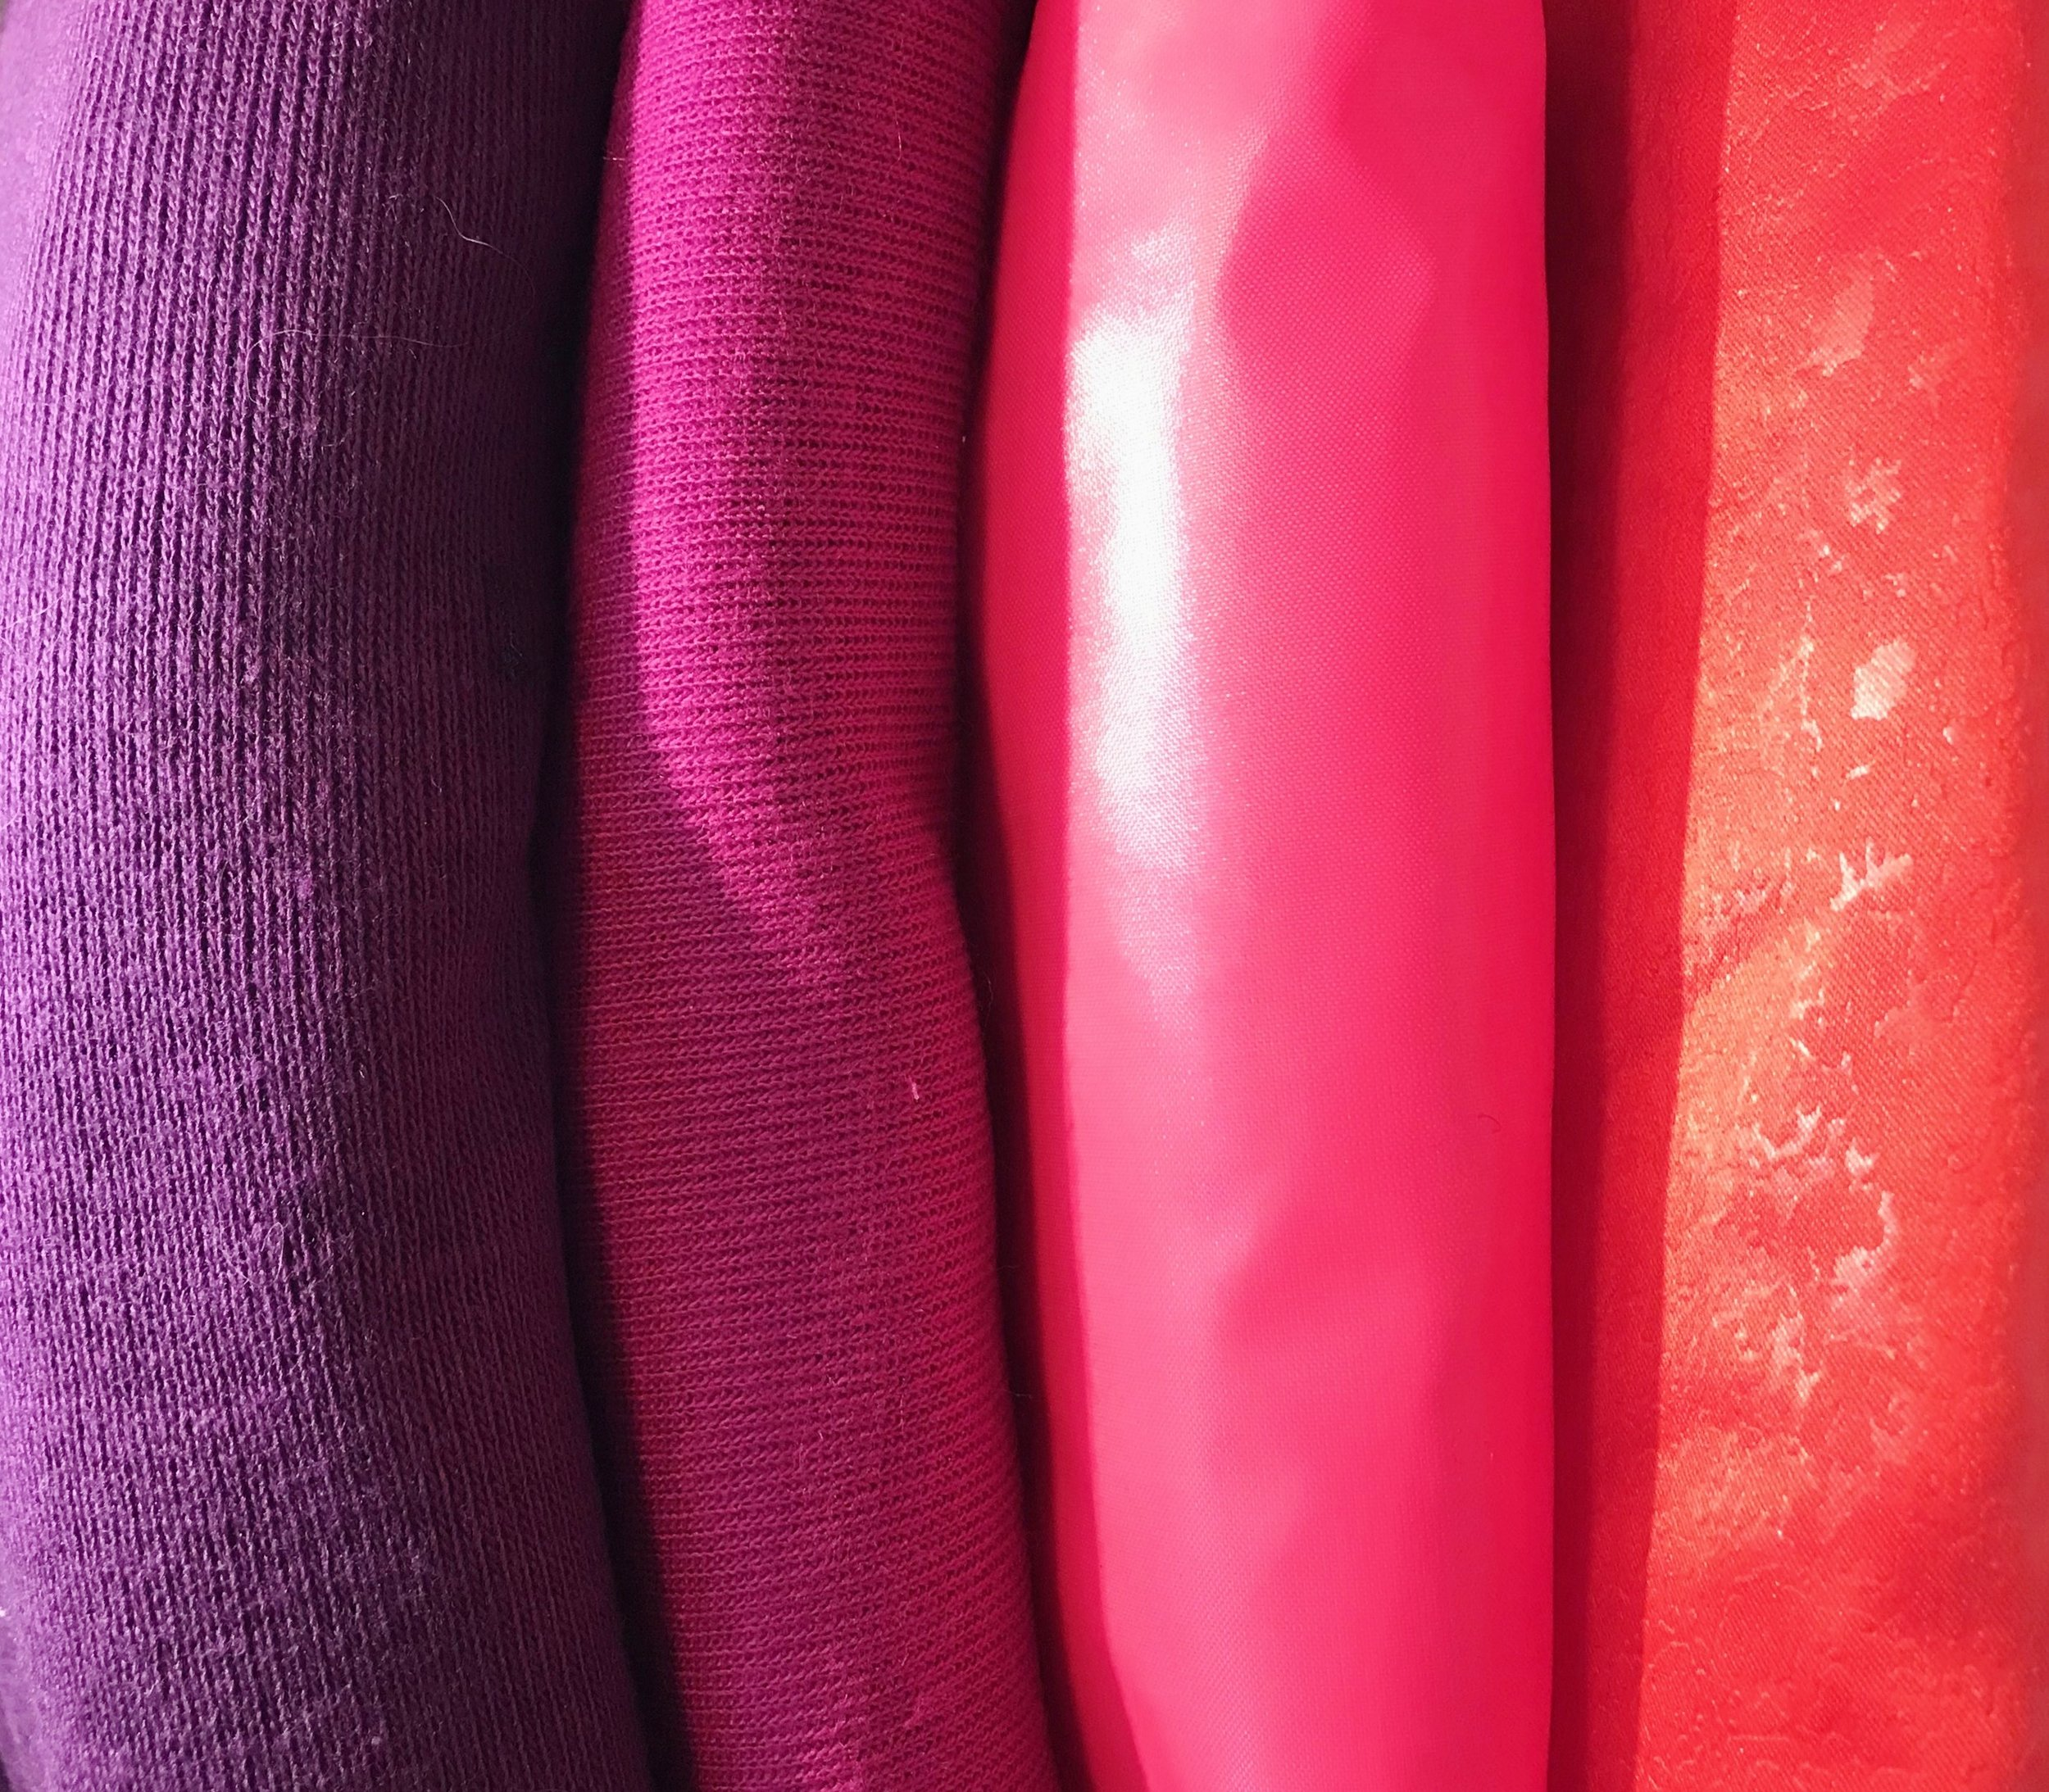 A sampling of solids for upcoming collection.